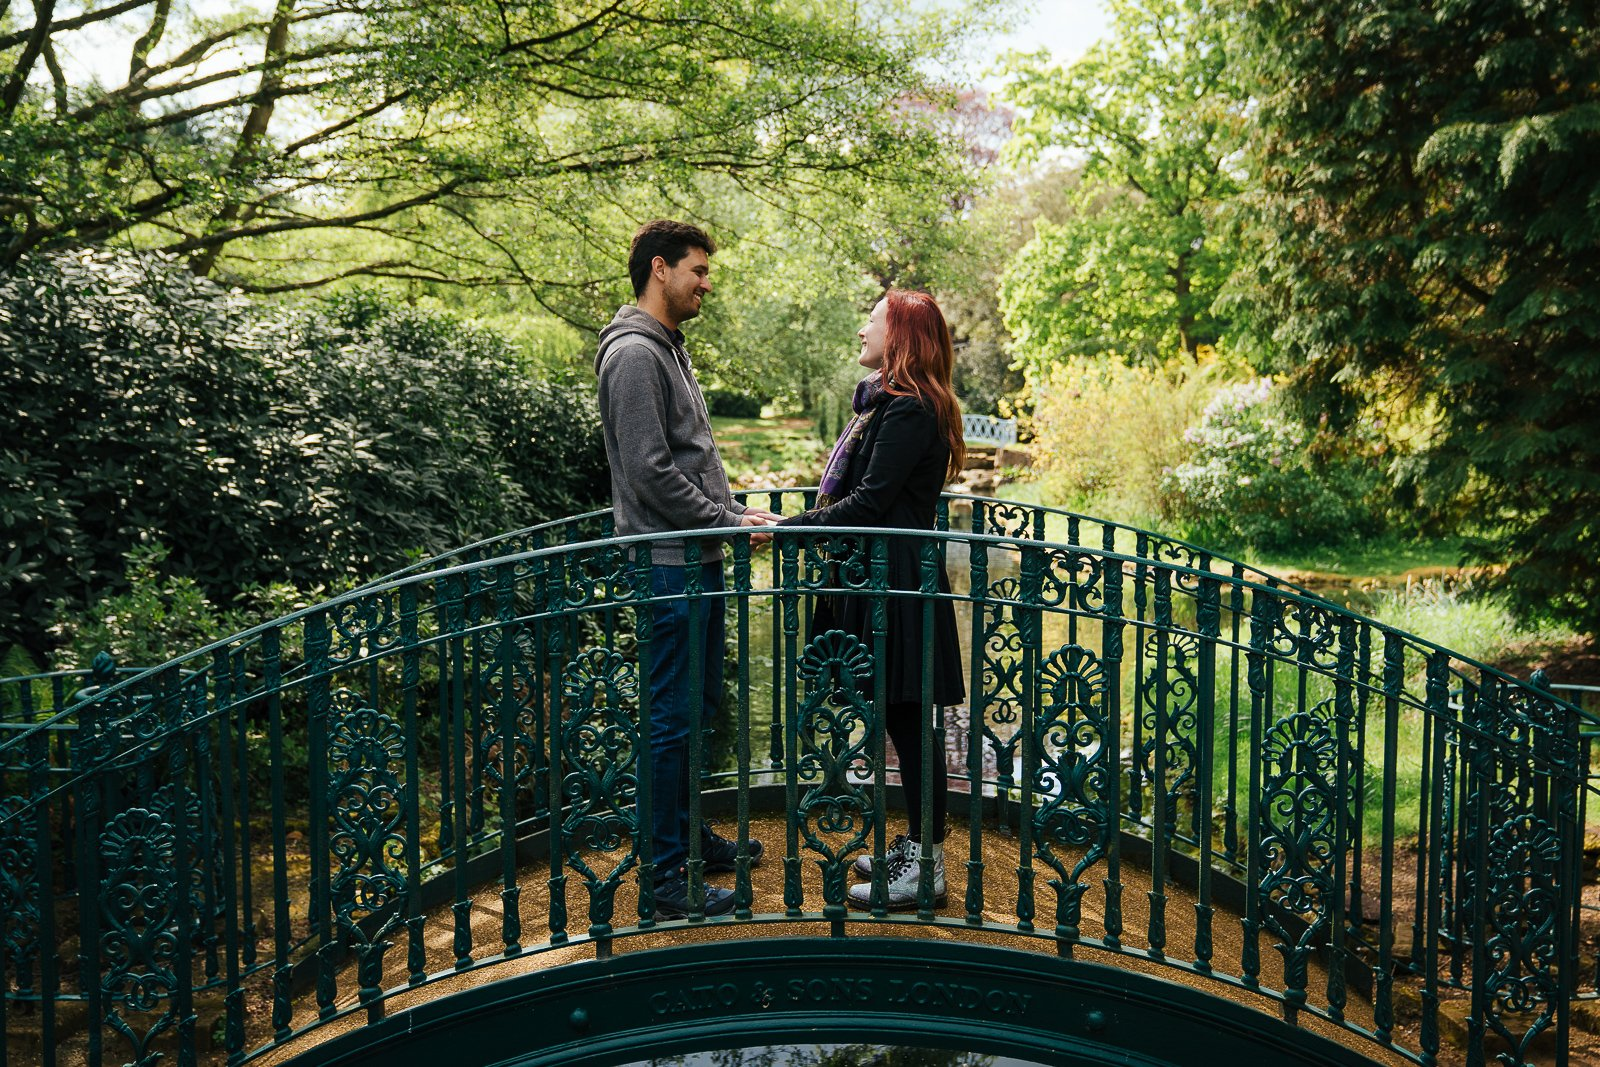 Happy couple holding hands on a bridge in beautiful garden setting